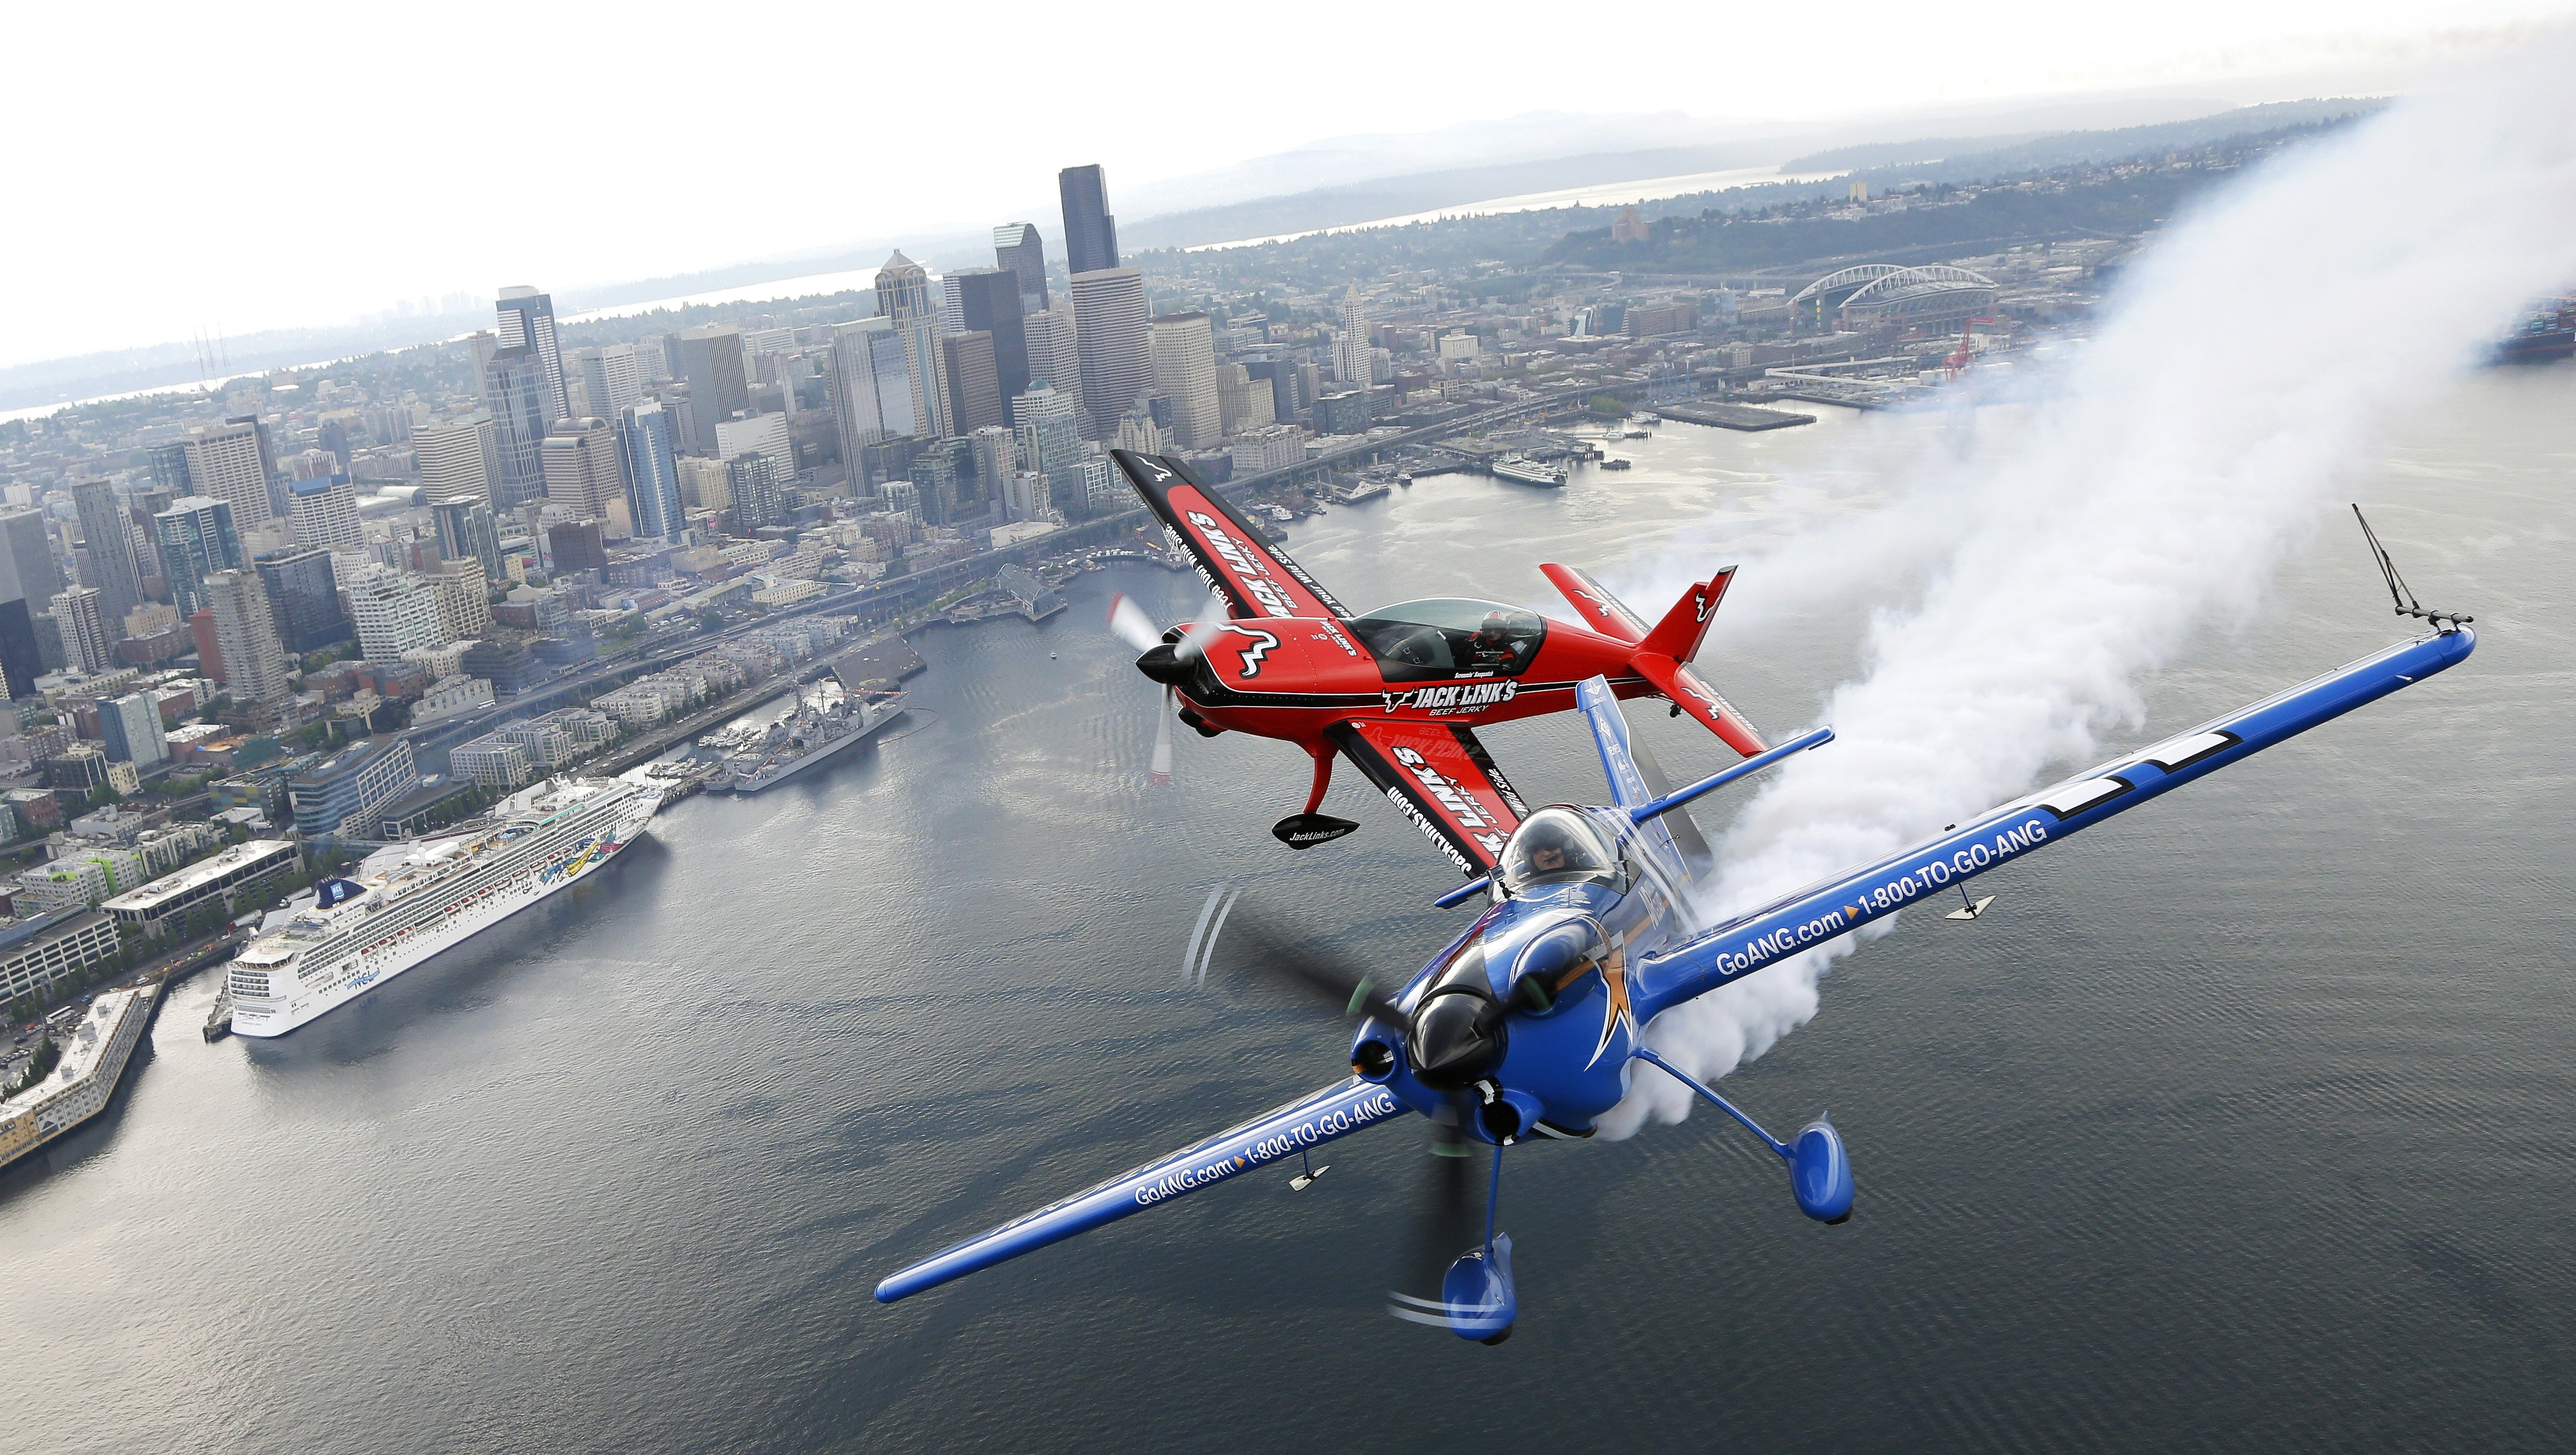 Aug. 2, 2014. Pilots John Klatt, right, flying the blue Air National Guard MX-S airplane, and Jeff Boerboon, left, flying the red Jack's Links Extra 300L airplane, fly in formation above Seattle.